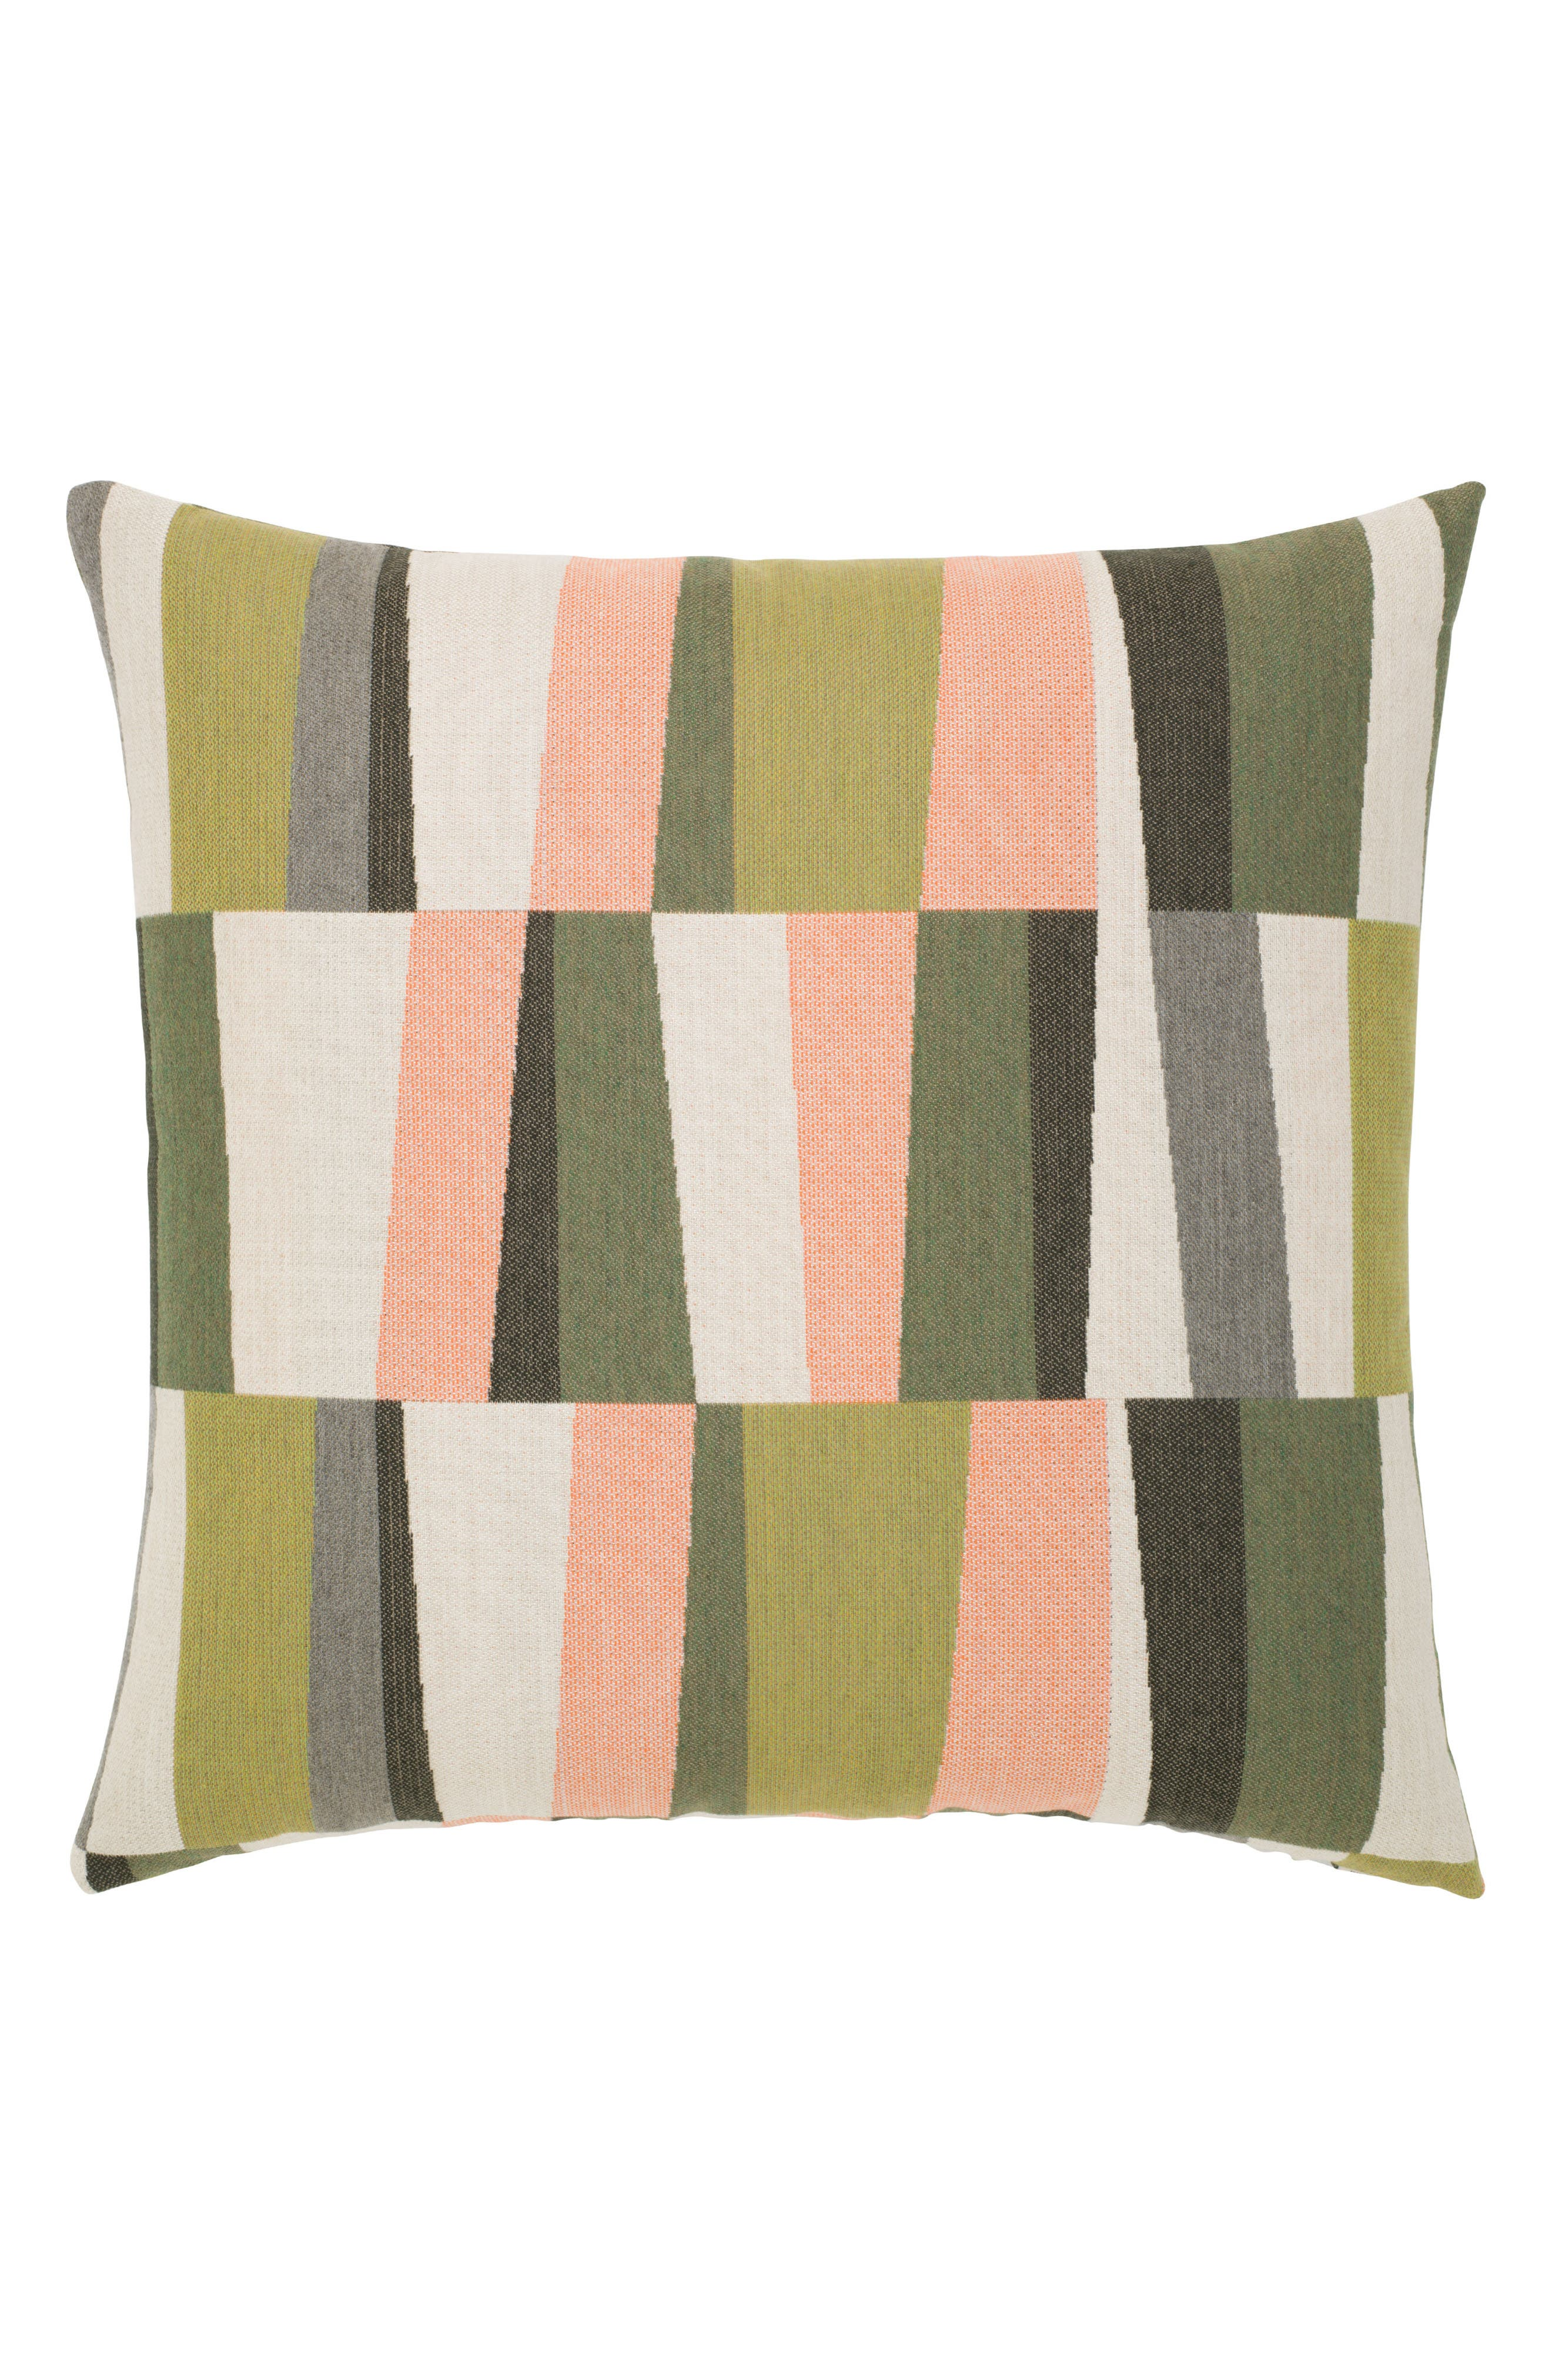 Strata Fern Indoor/Outdoor Accent Pillow,                             Main thumbnail 1, color,                             300